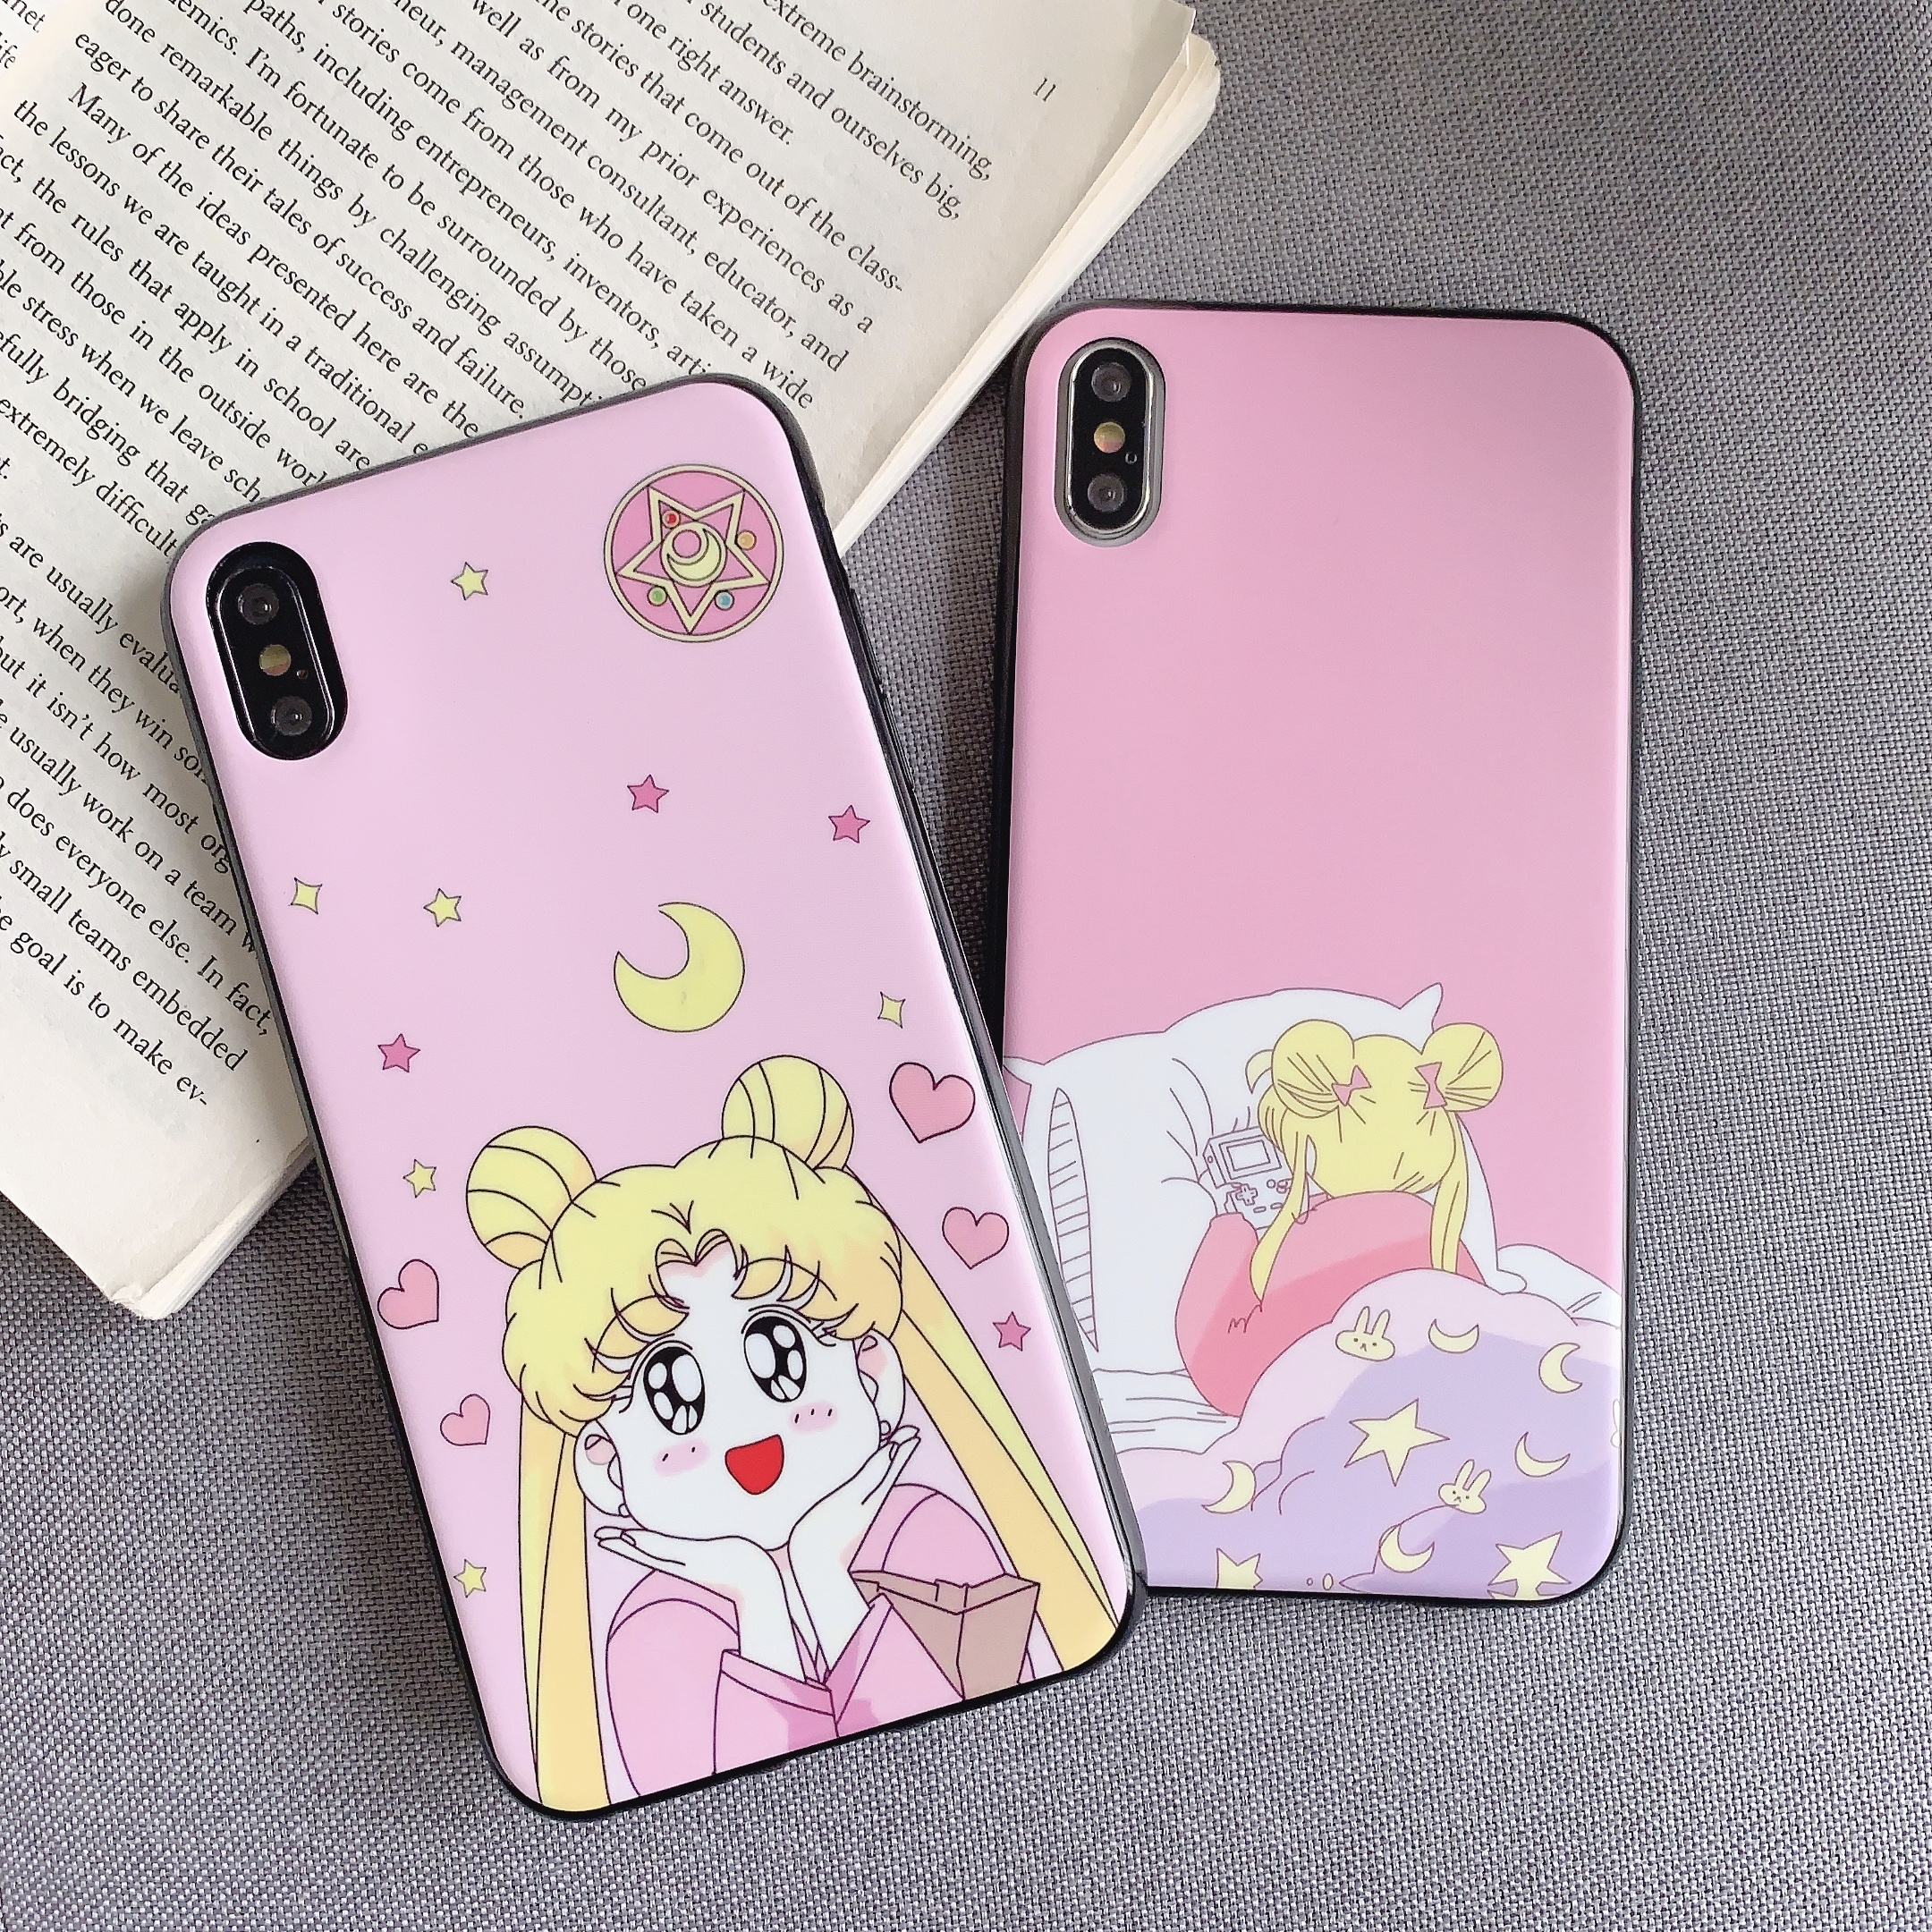 Funny Cute Cartoon  Sailor Moon Pretty Girl Phone Case For iphone 6 6S 7 8 Puls xs max X XR Xs Max Silicone TPU Soft Cover